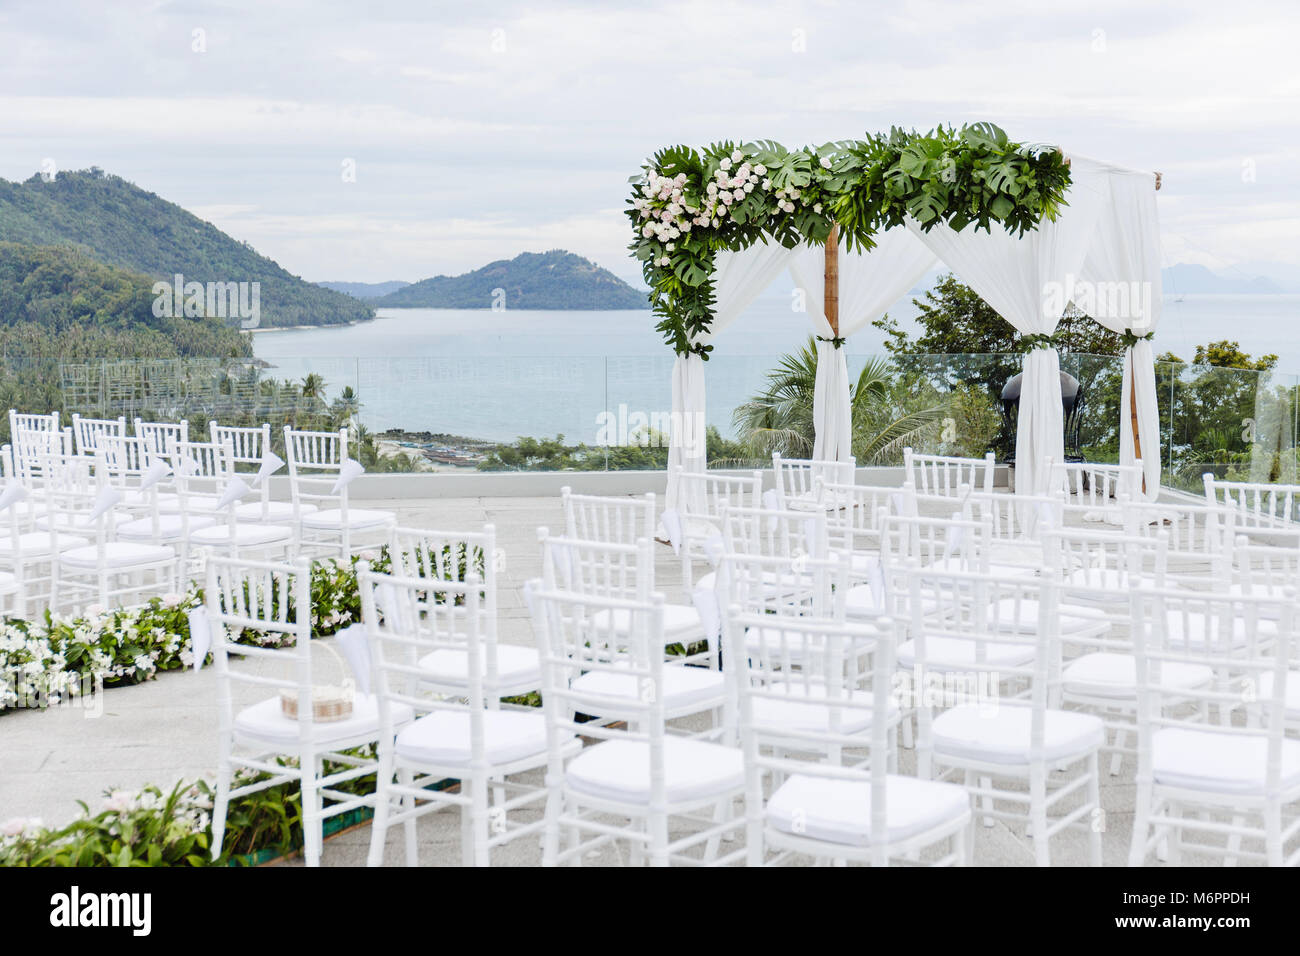 The Beach Wedding Venue Outdoor With The Ocean View In The Stock